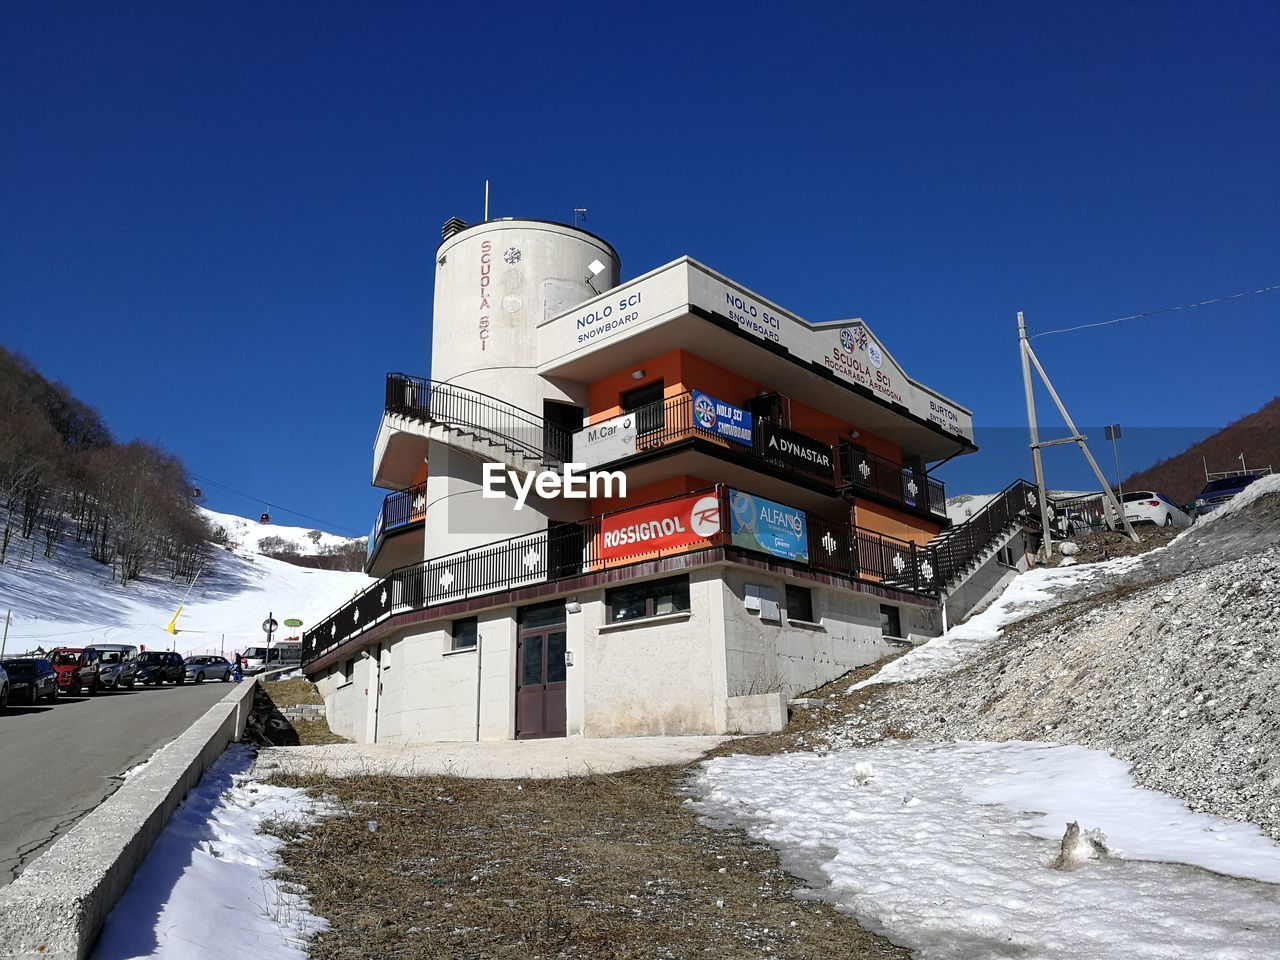 snow, cold temperature, sky, winter, nature, architecture, clear sky, built structure, day, white color, mountain, building exterior, no people, blue, water, frozen, covering, transportation, outdoors, snowcapped mountain